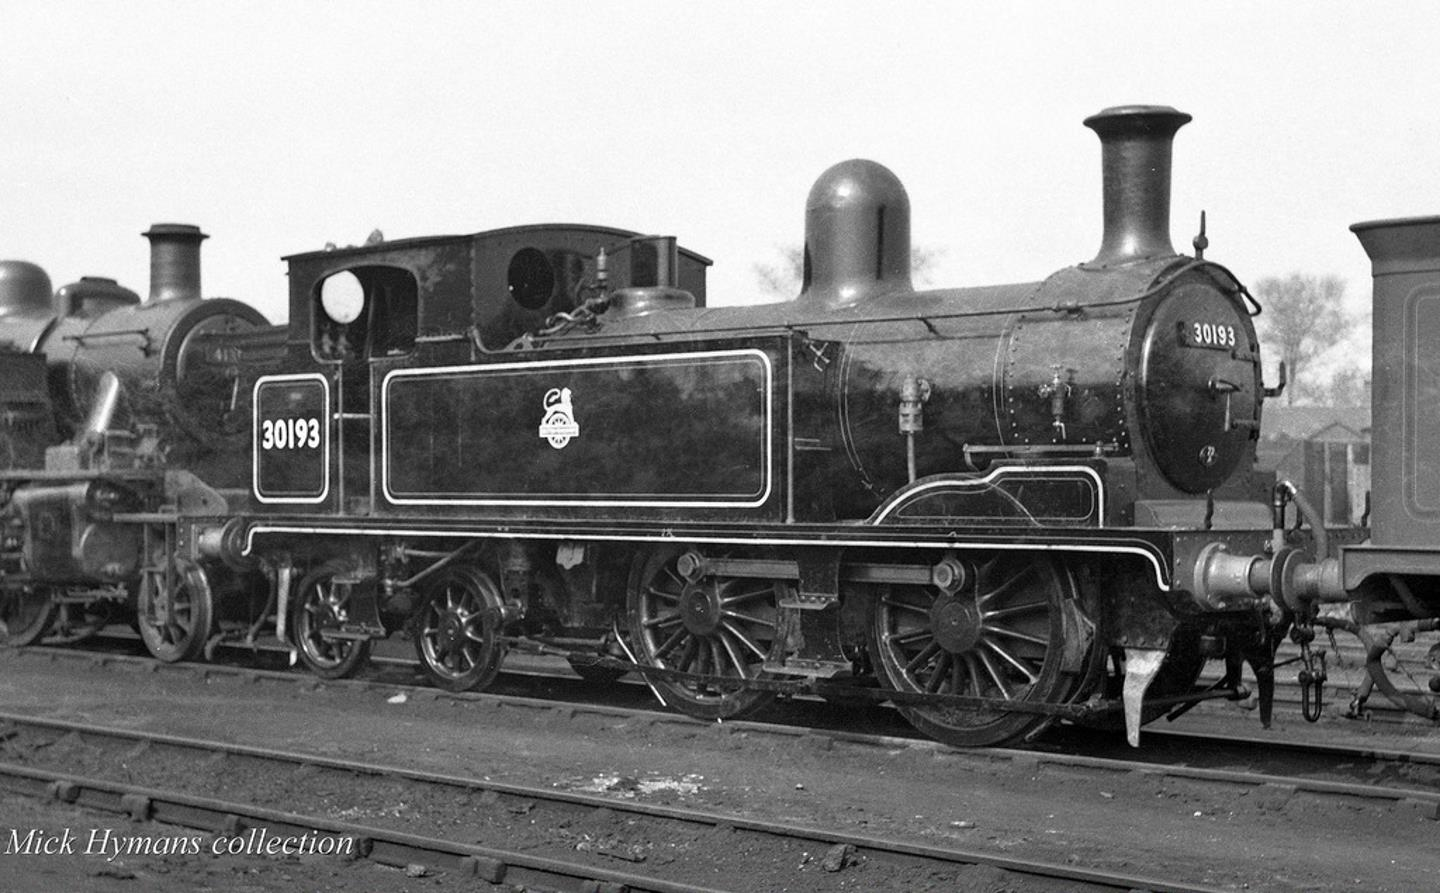 No.30193 // Credit Mick Hymans collection